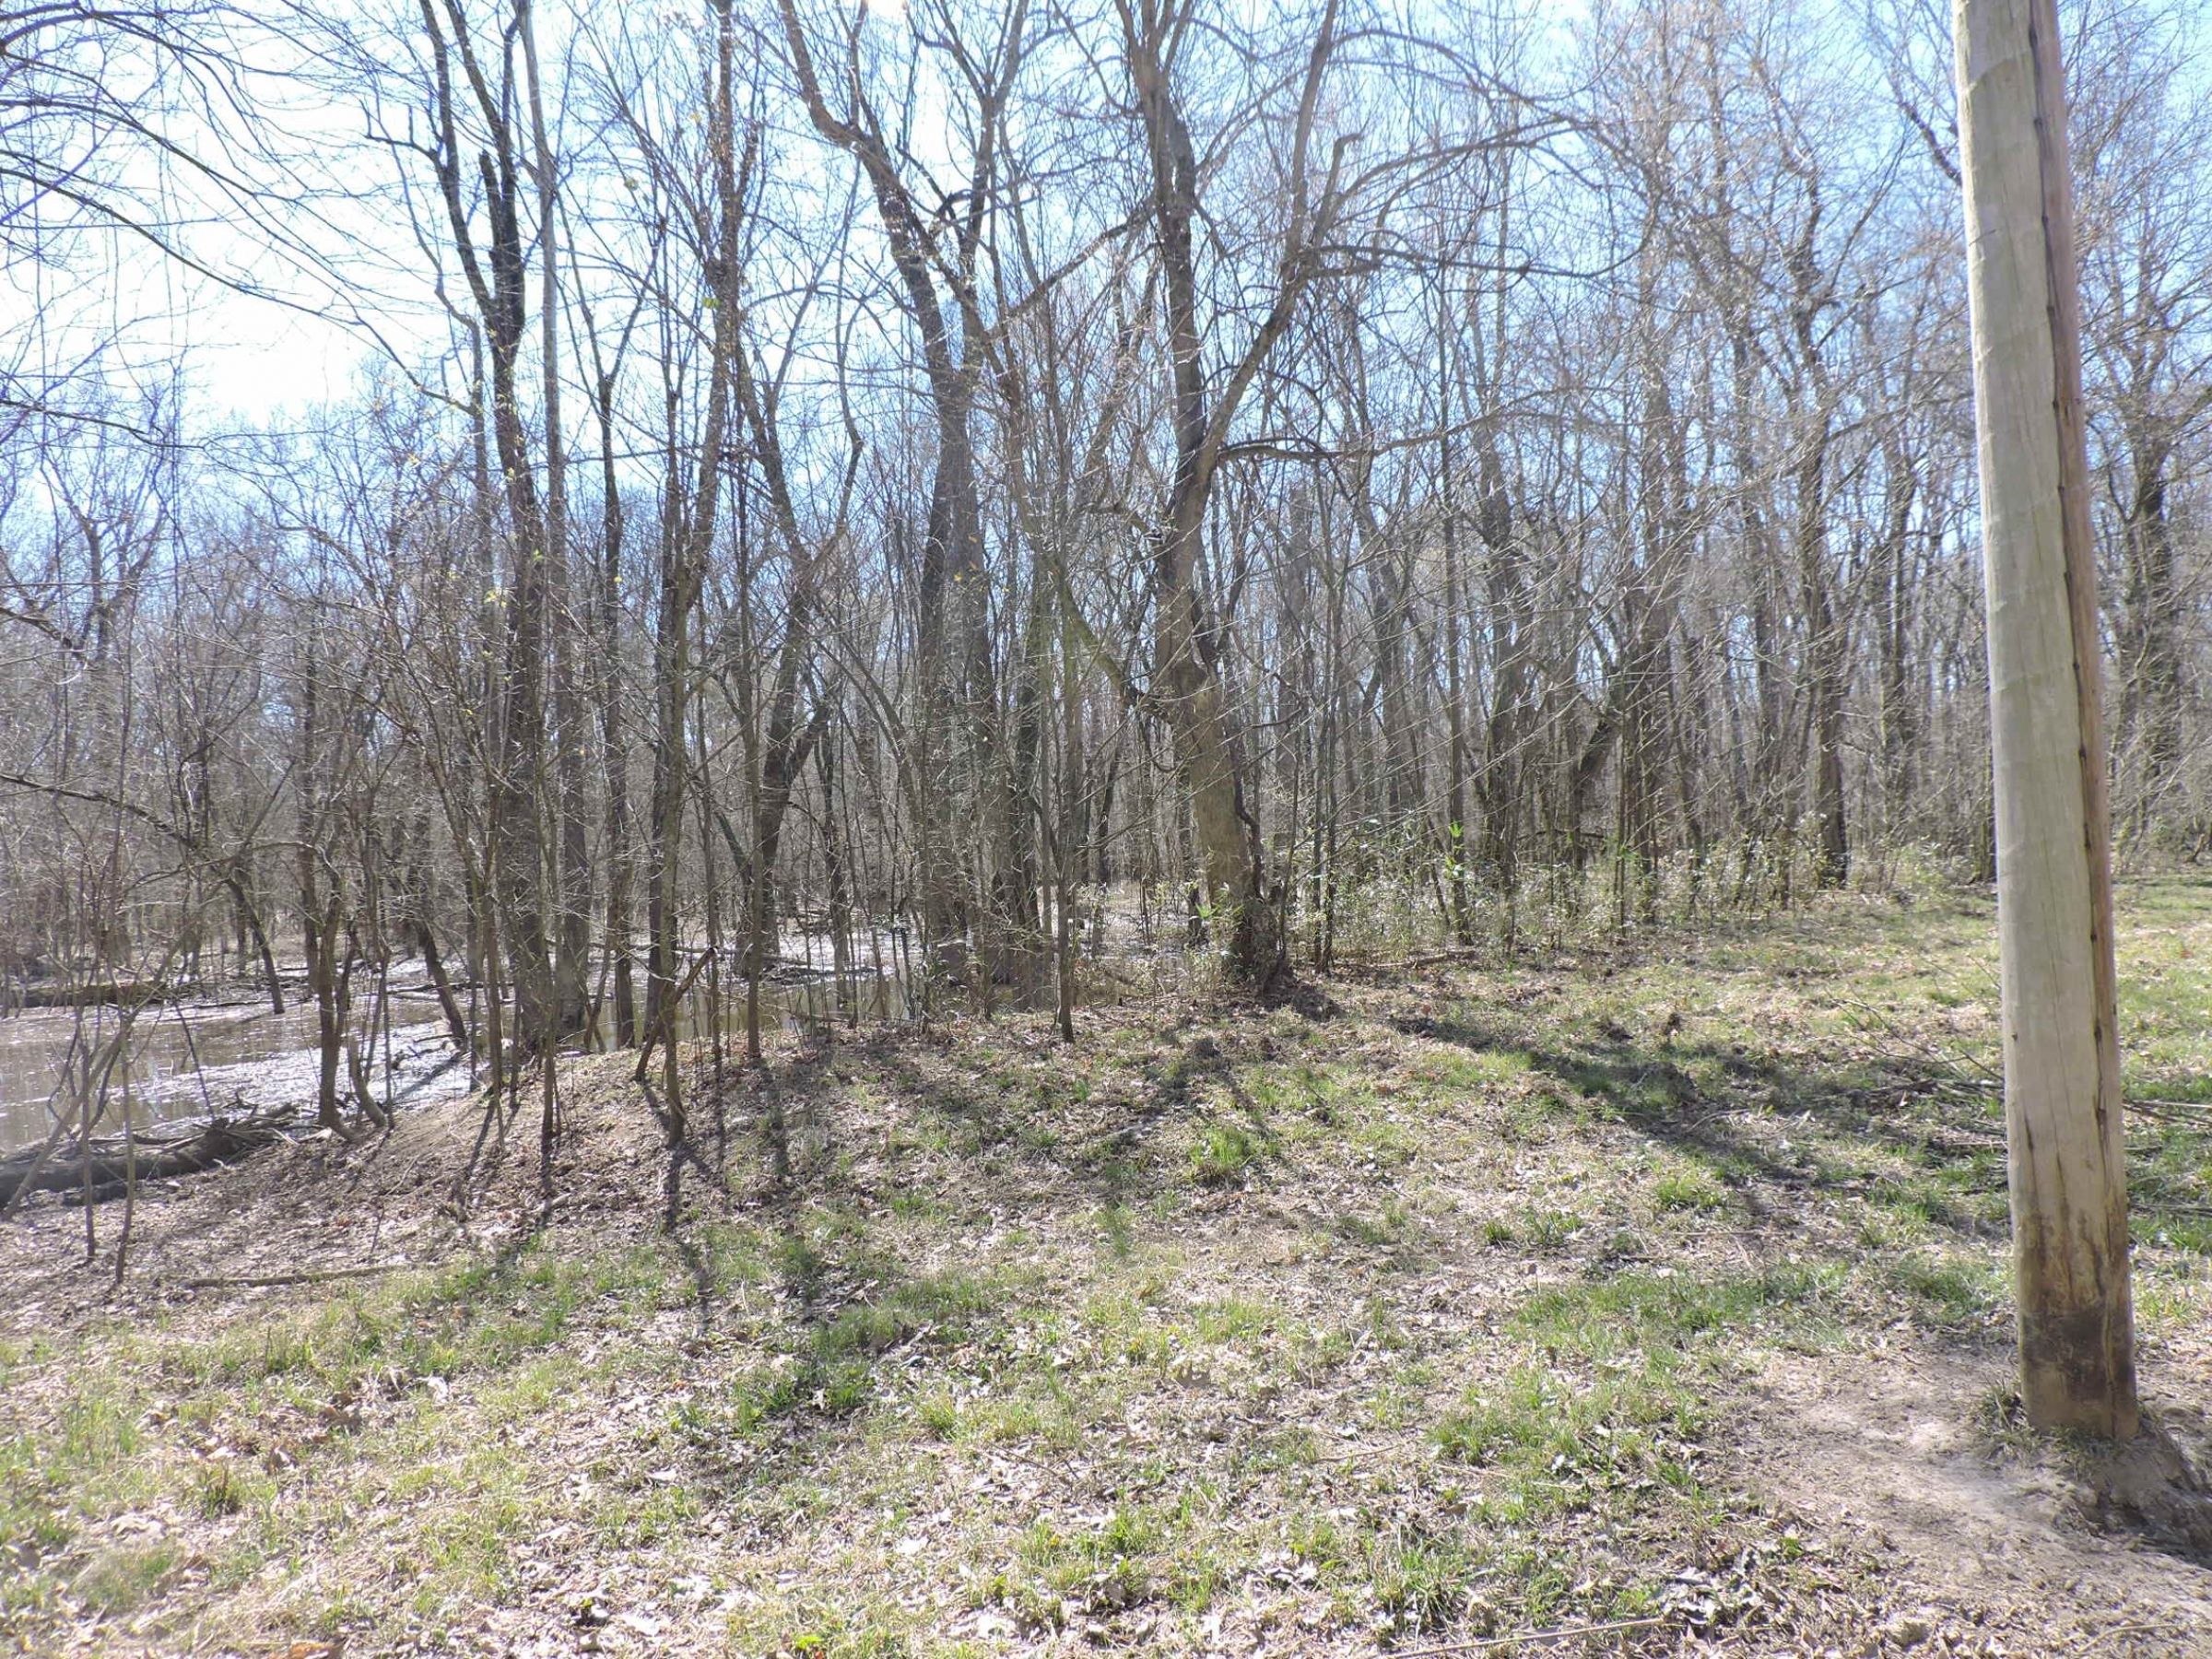 lawrence-county-arkansas-180-acres-listing-number-15014-6-2020-05-28-210442.JPG